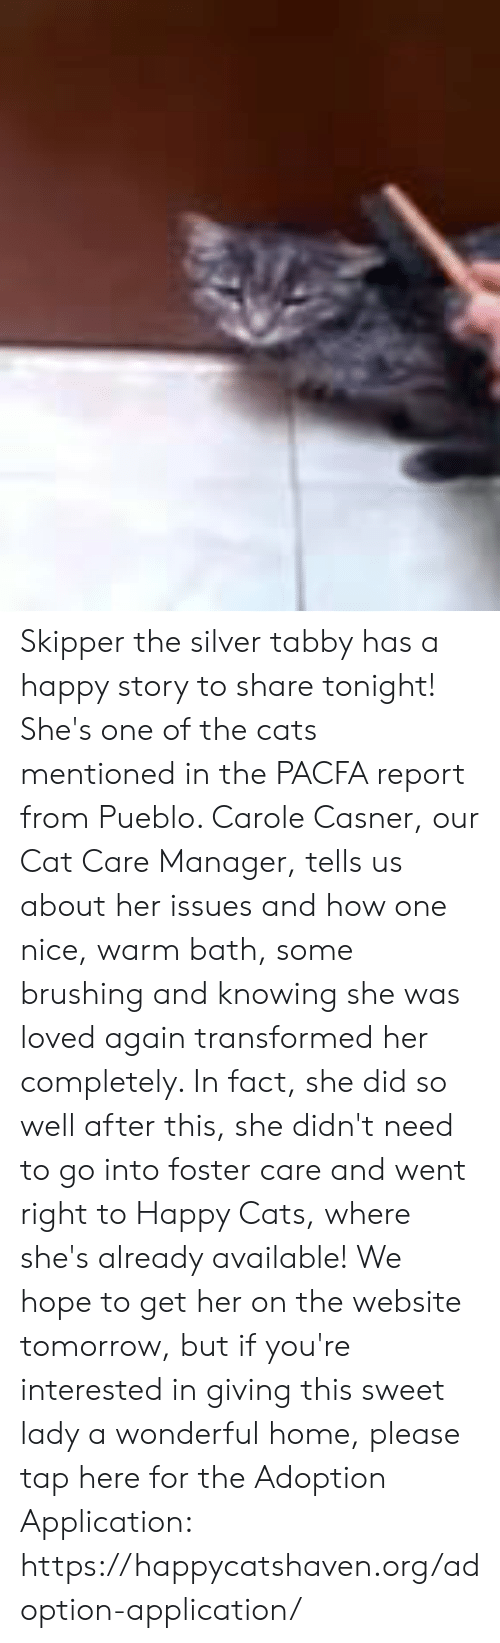 Cats, Memes, and Happy: Skipper the silver tabby has a happy story to share tonight! She's one of the cats mentioned in the PACFA report from Pueblo. Carole Casner, our Cat Care Manager, tells us about her issues and how one nice, warm bath, some brushing and knowing she was loved again transformed her completely. In fact, she did so well after this, she didn't need to go into foster care and went right to Happy Cats, where she's already available! We hope to get her on the website tomorrow, but if you're interested in giving this sweet lady a wonderful home, please tap here for the Adoption Application: https://happycatshaven.org/adoption-application/